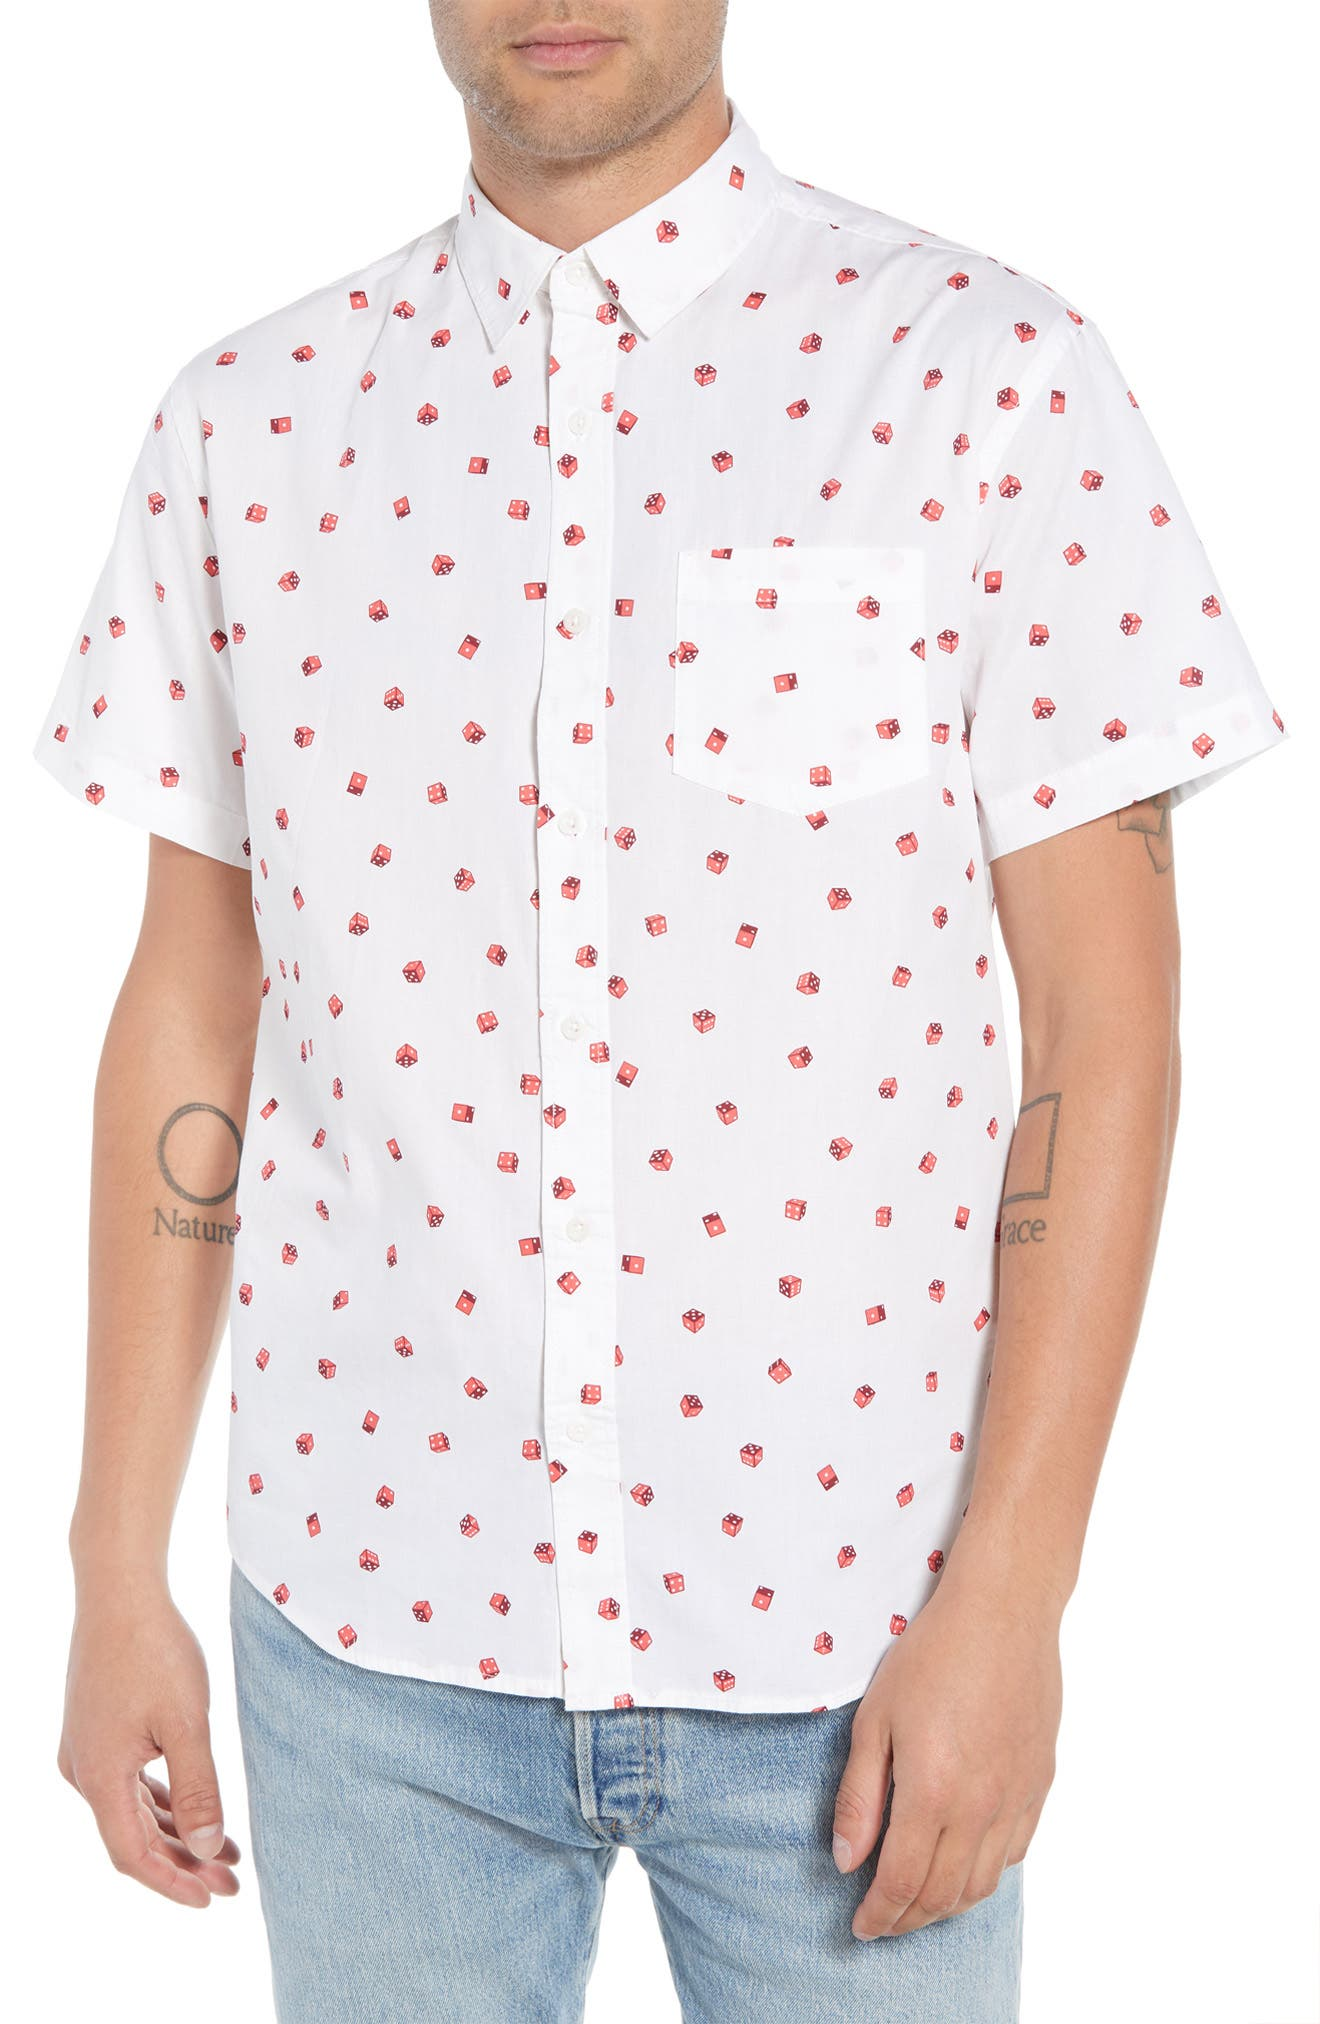 Print Camp Shirt,                             Main thumbnail 1, color,                             White / Red Rumba No Dice